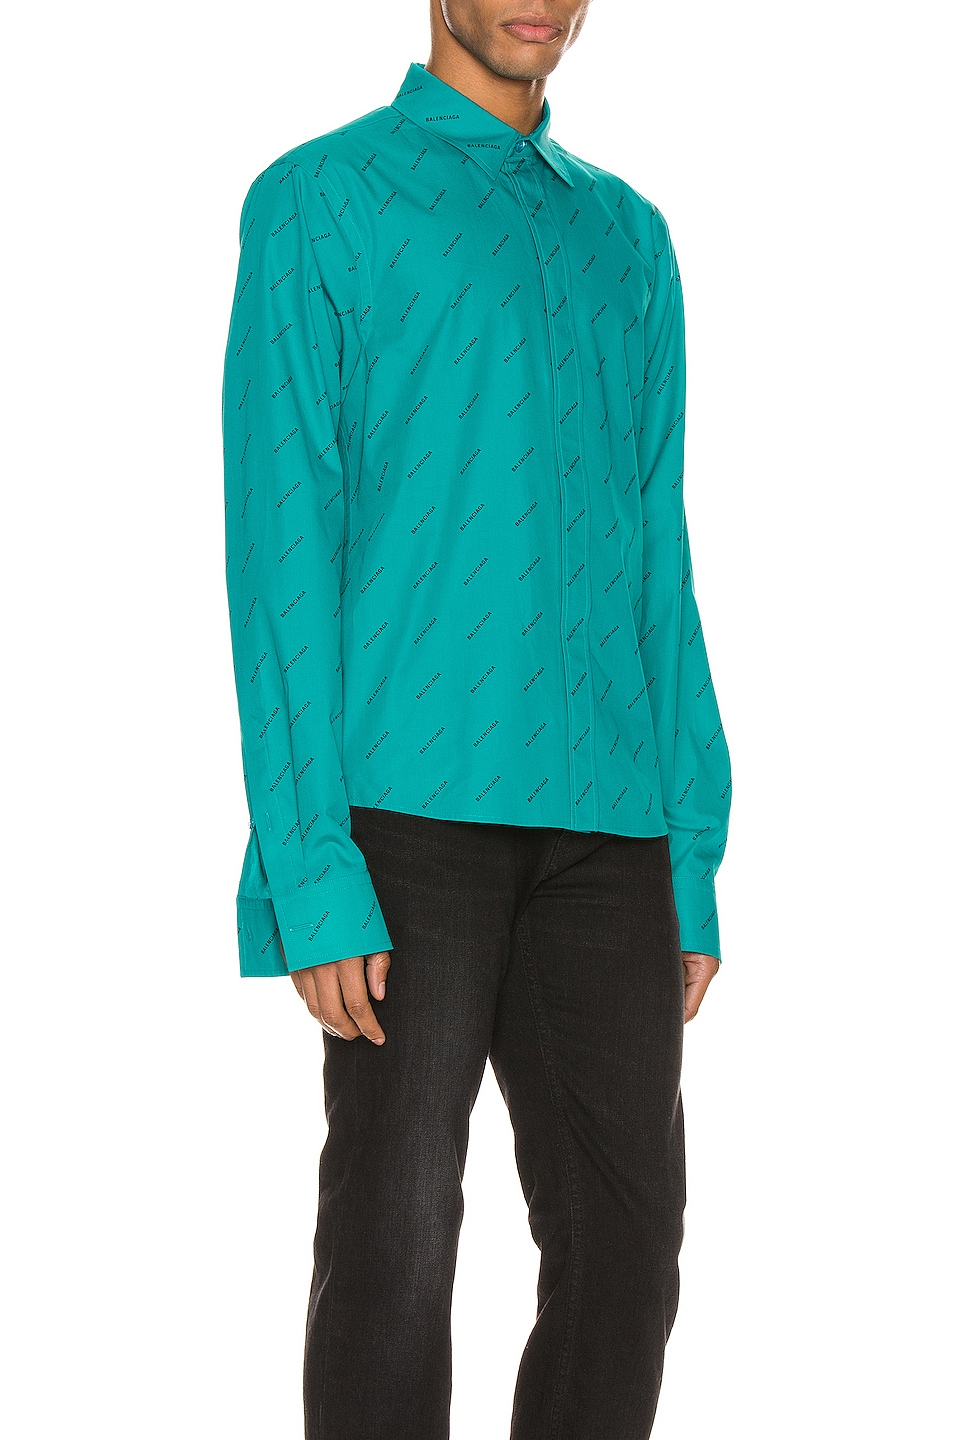 Image 2 of Balenciaga Fitted Shirt in Turquoise & Black